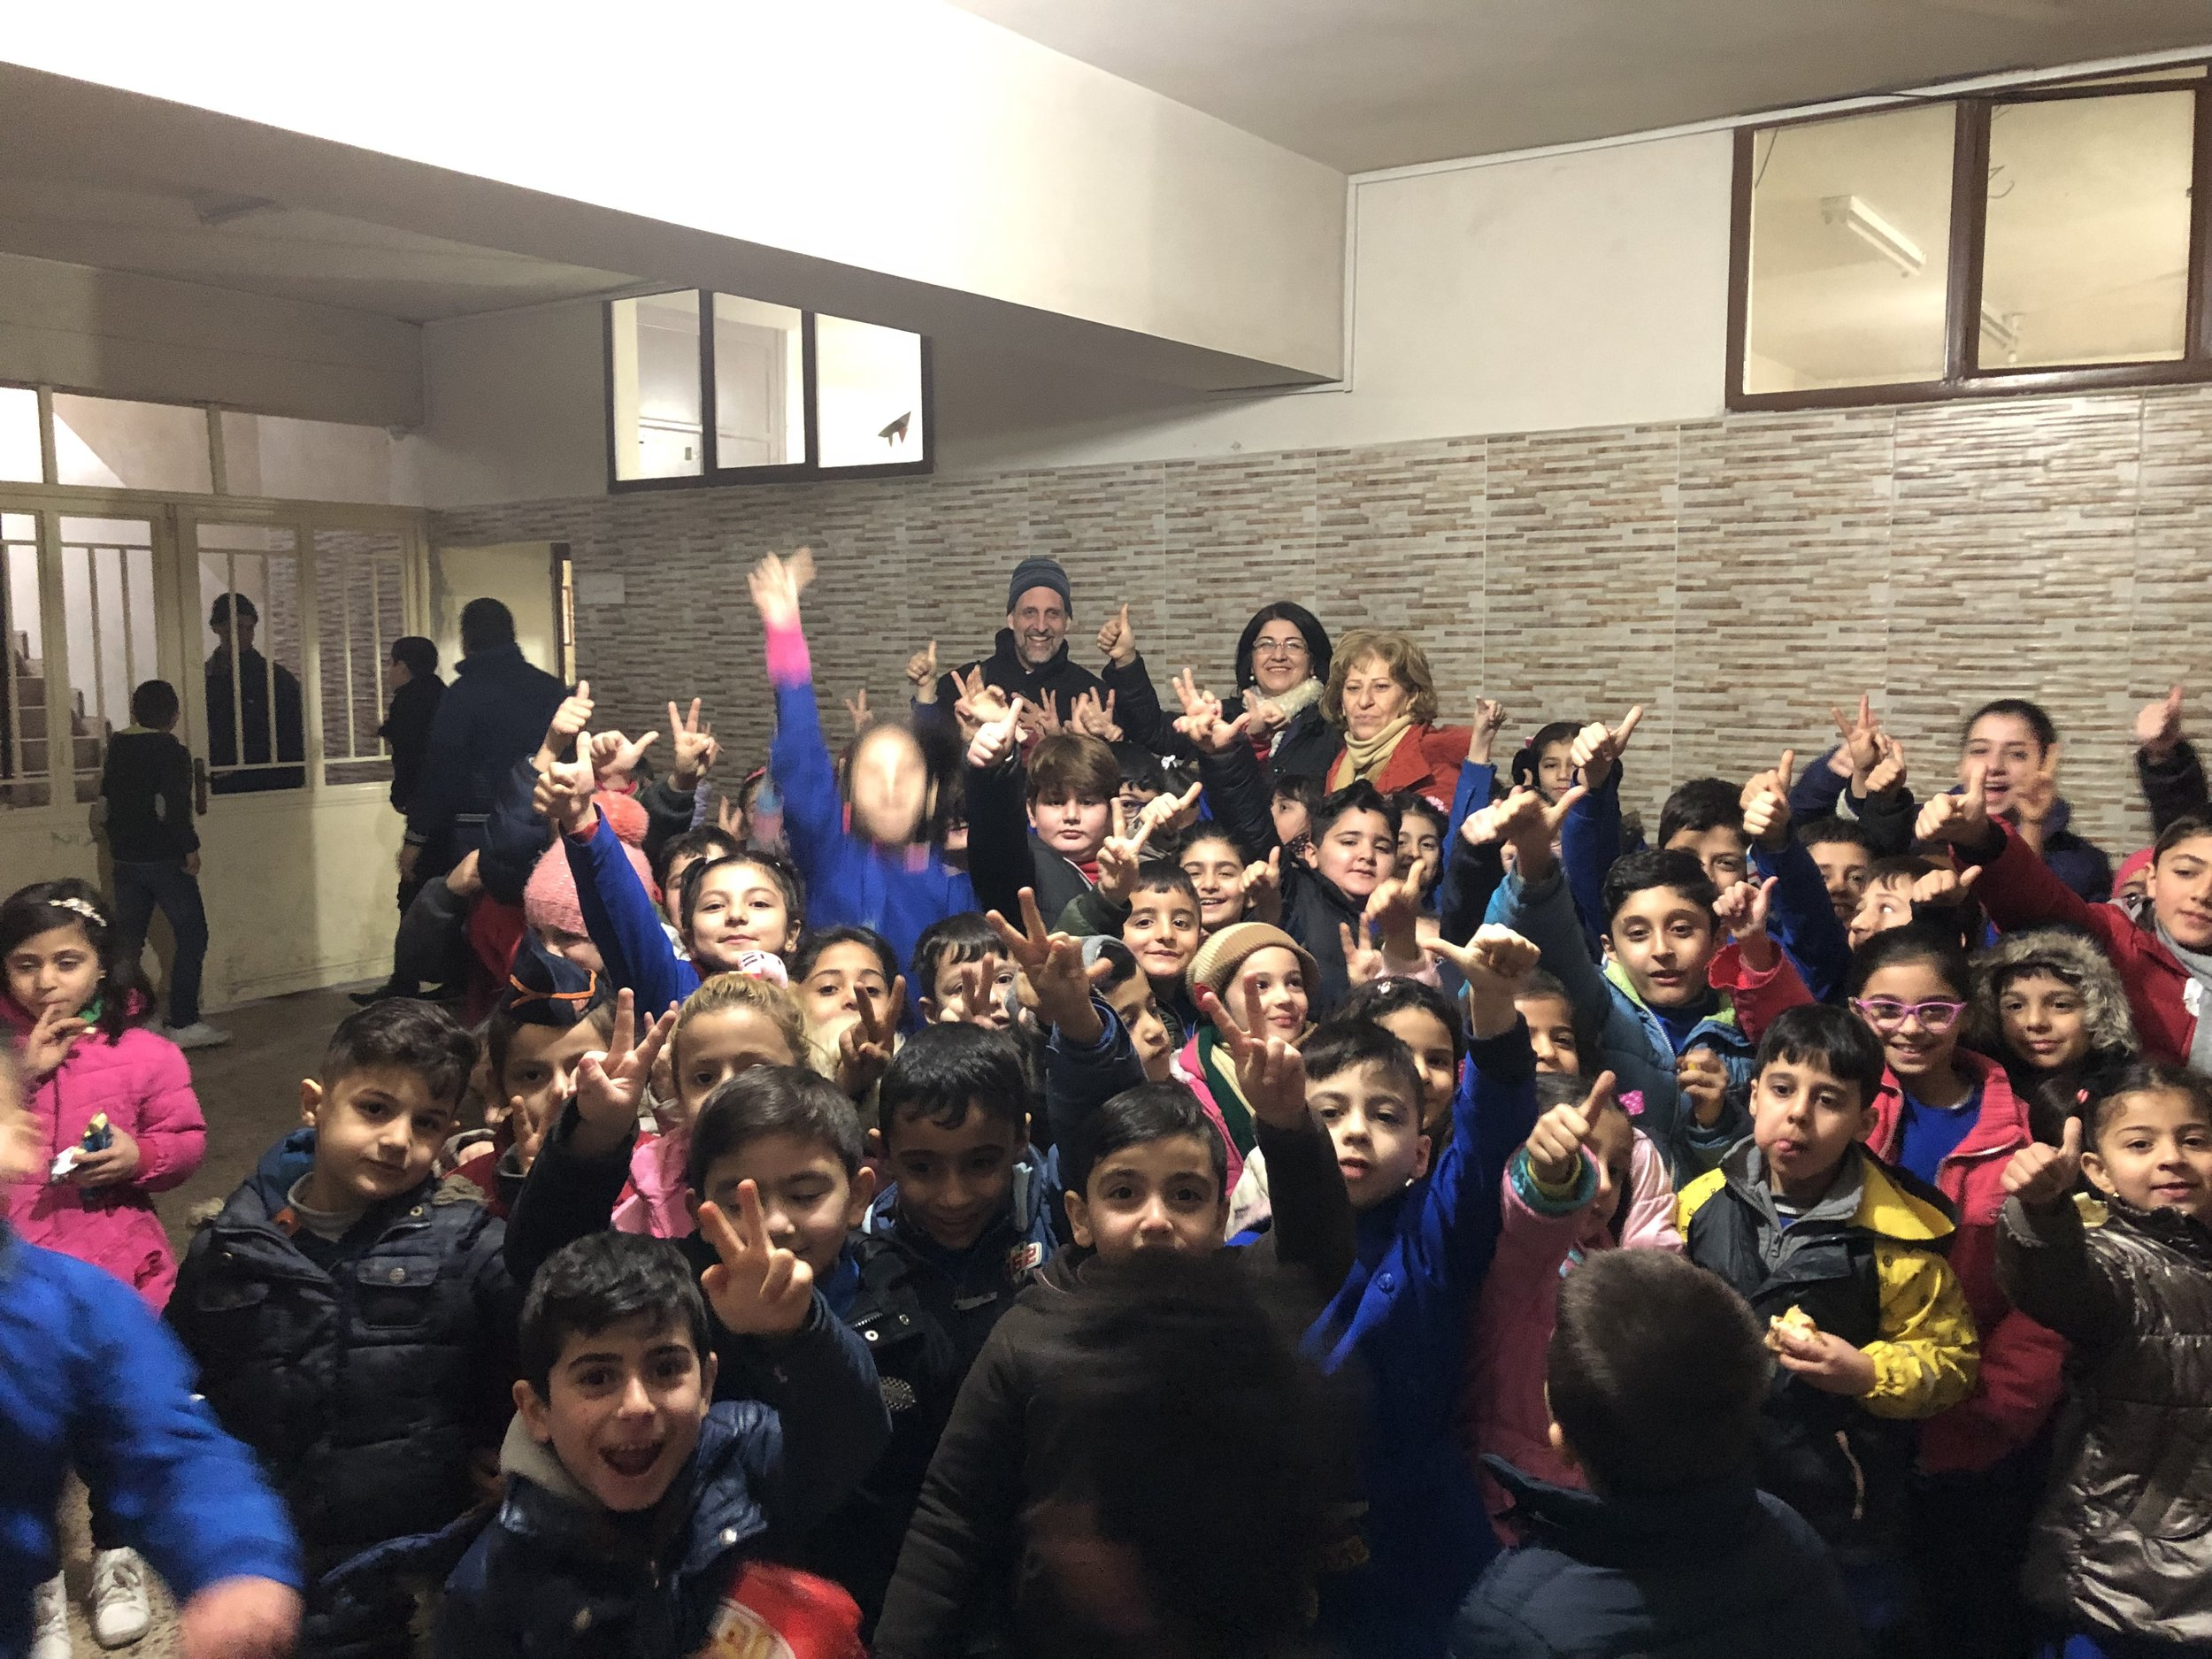 A sea of children at the evangelical school in Qamishly